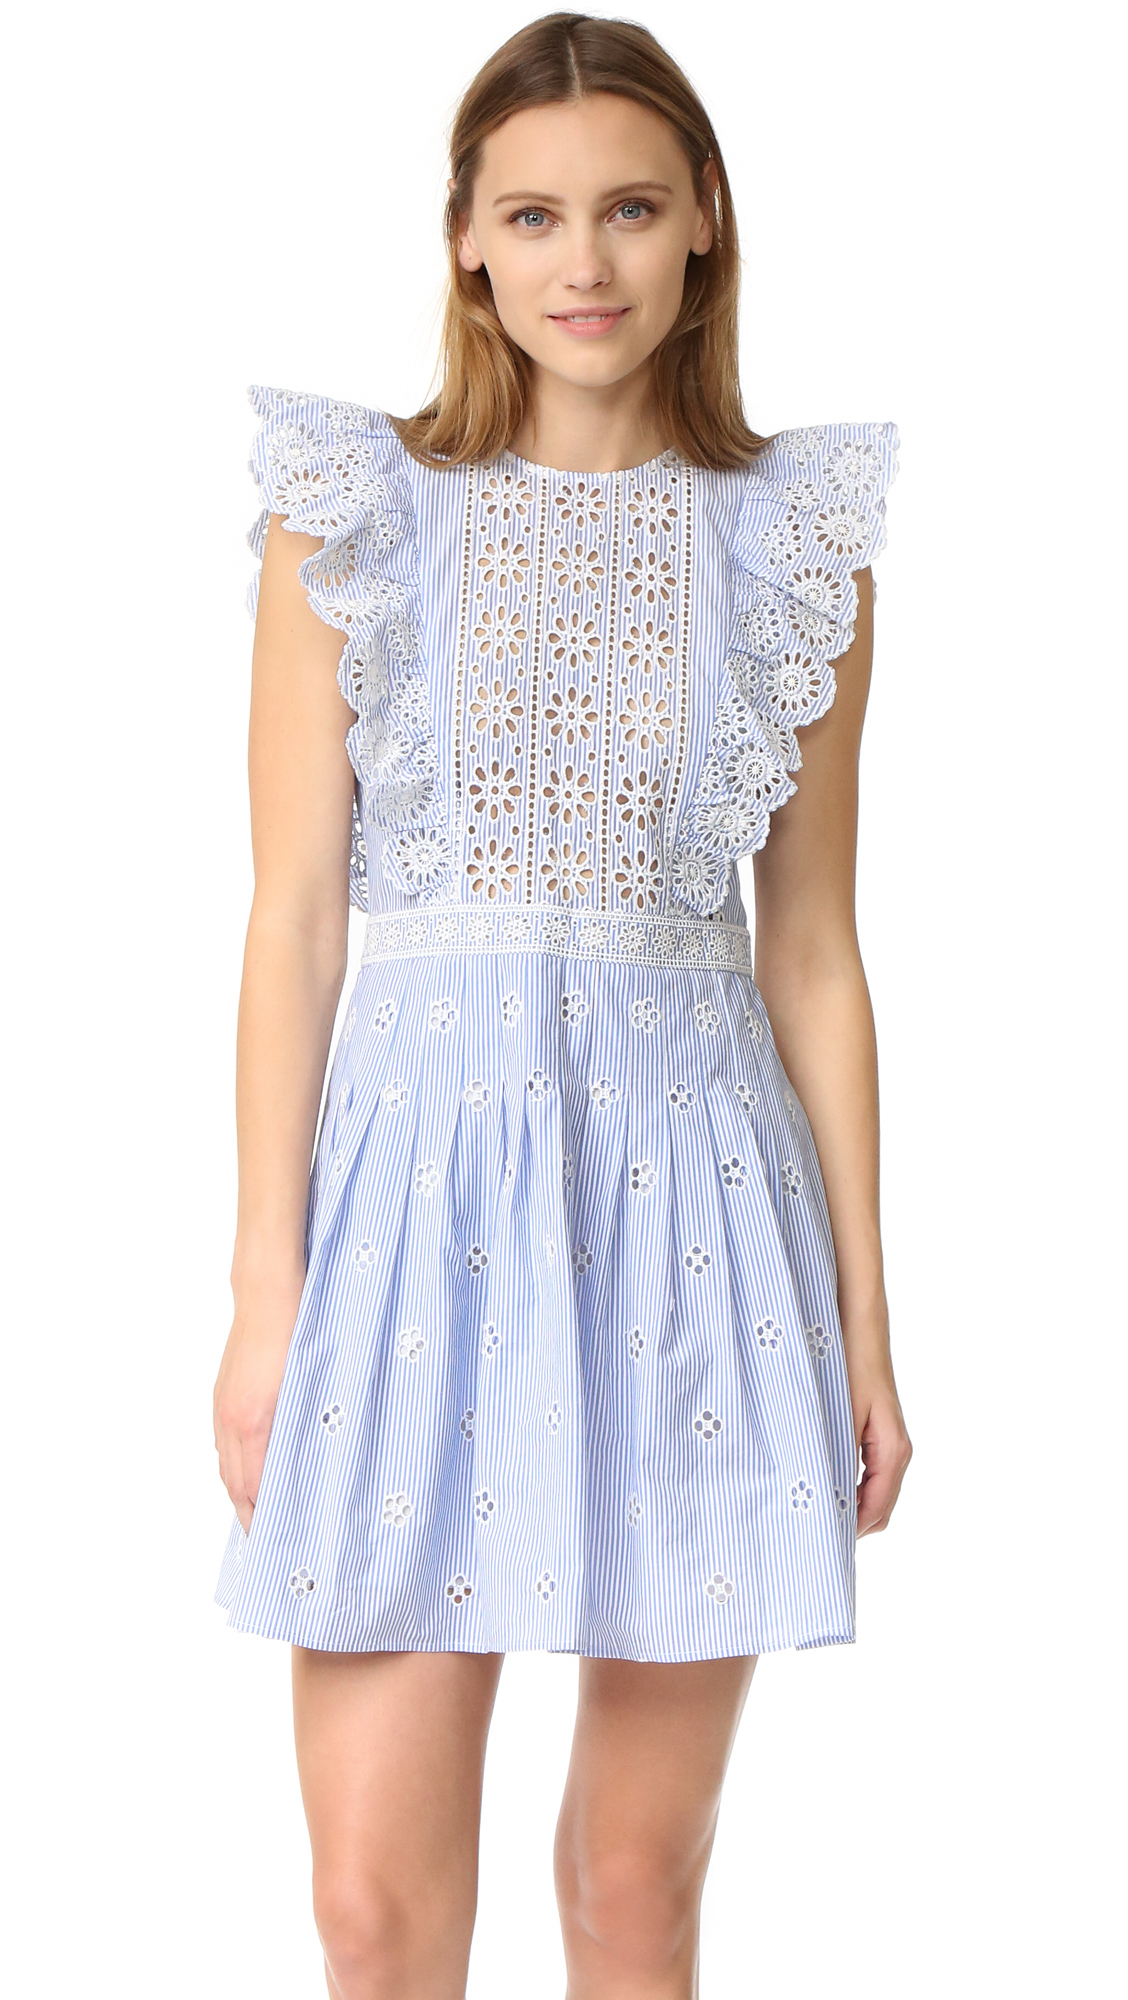 How to accessorize a white eyelet dress